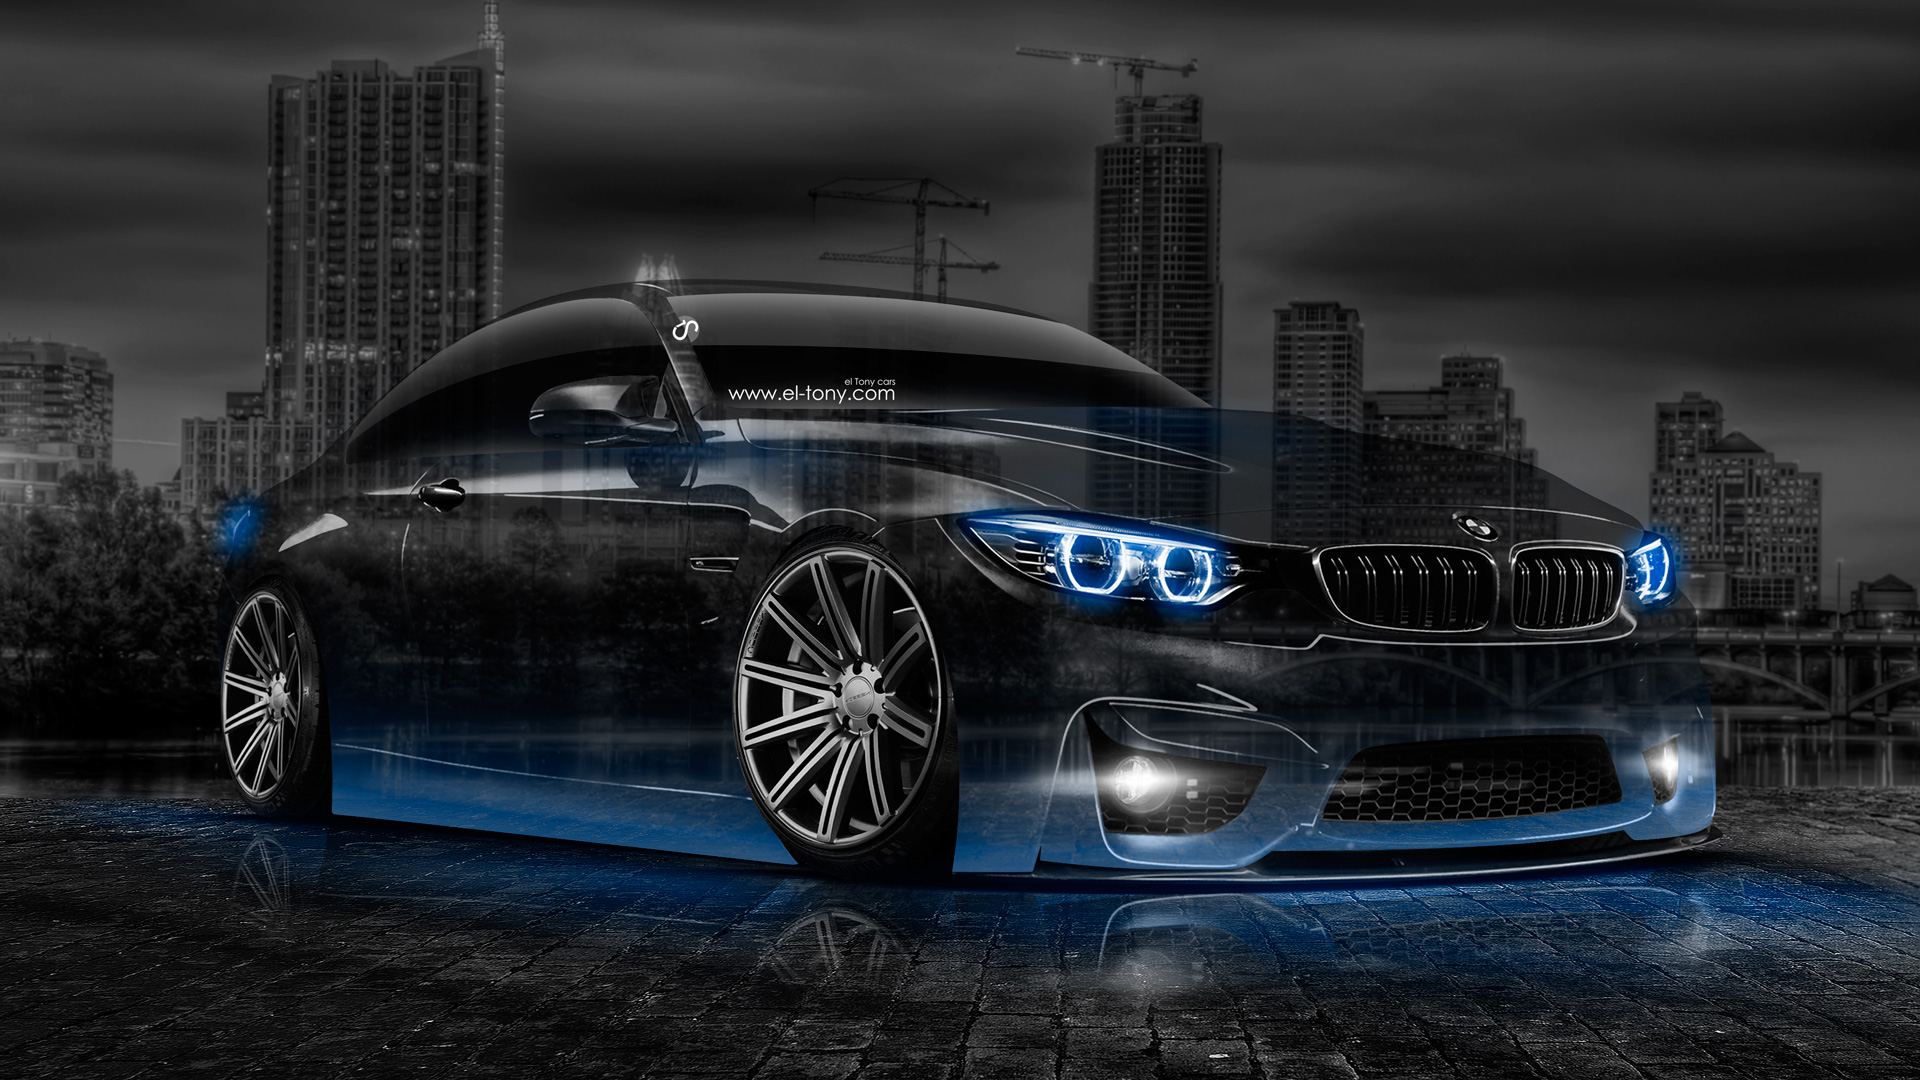 Background Car Hd Wallpapers Cities: BMW M4 HD Wallpaper